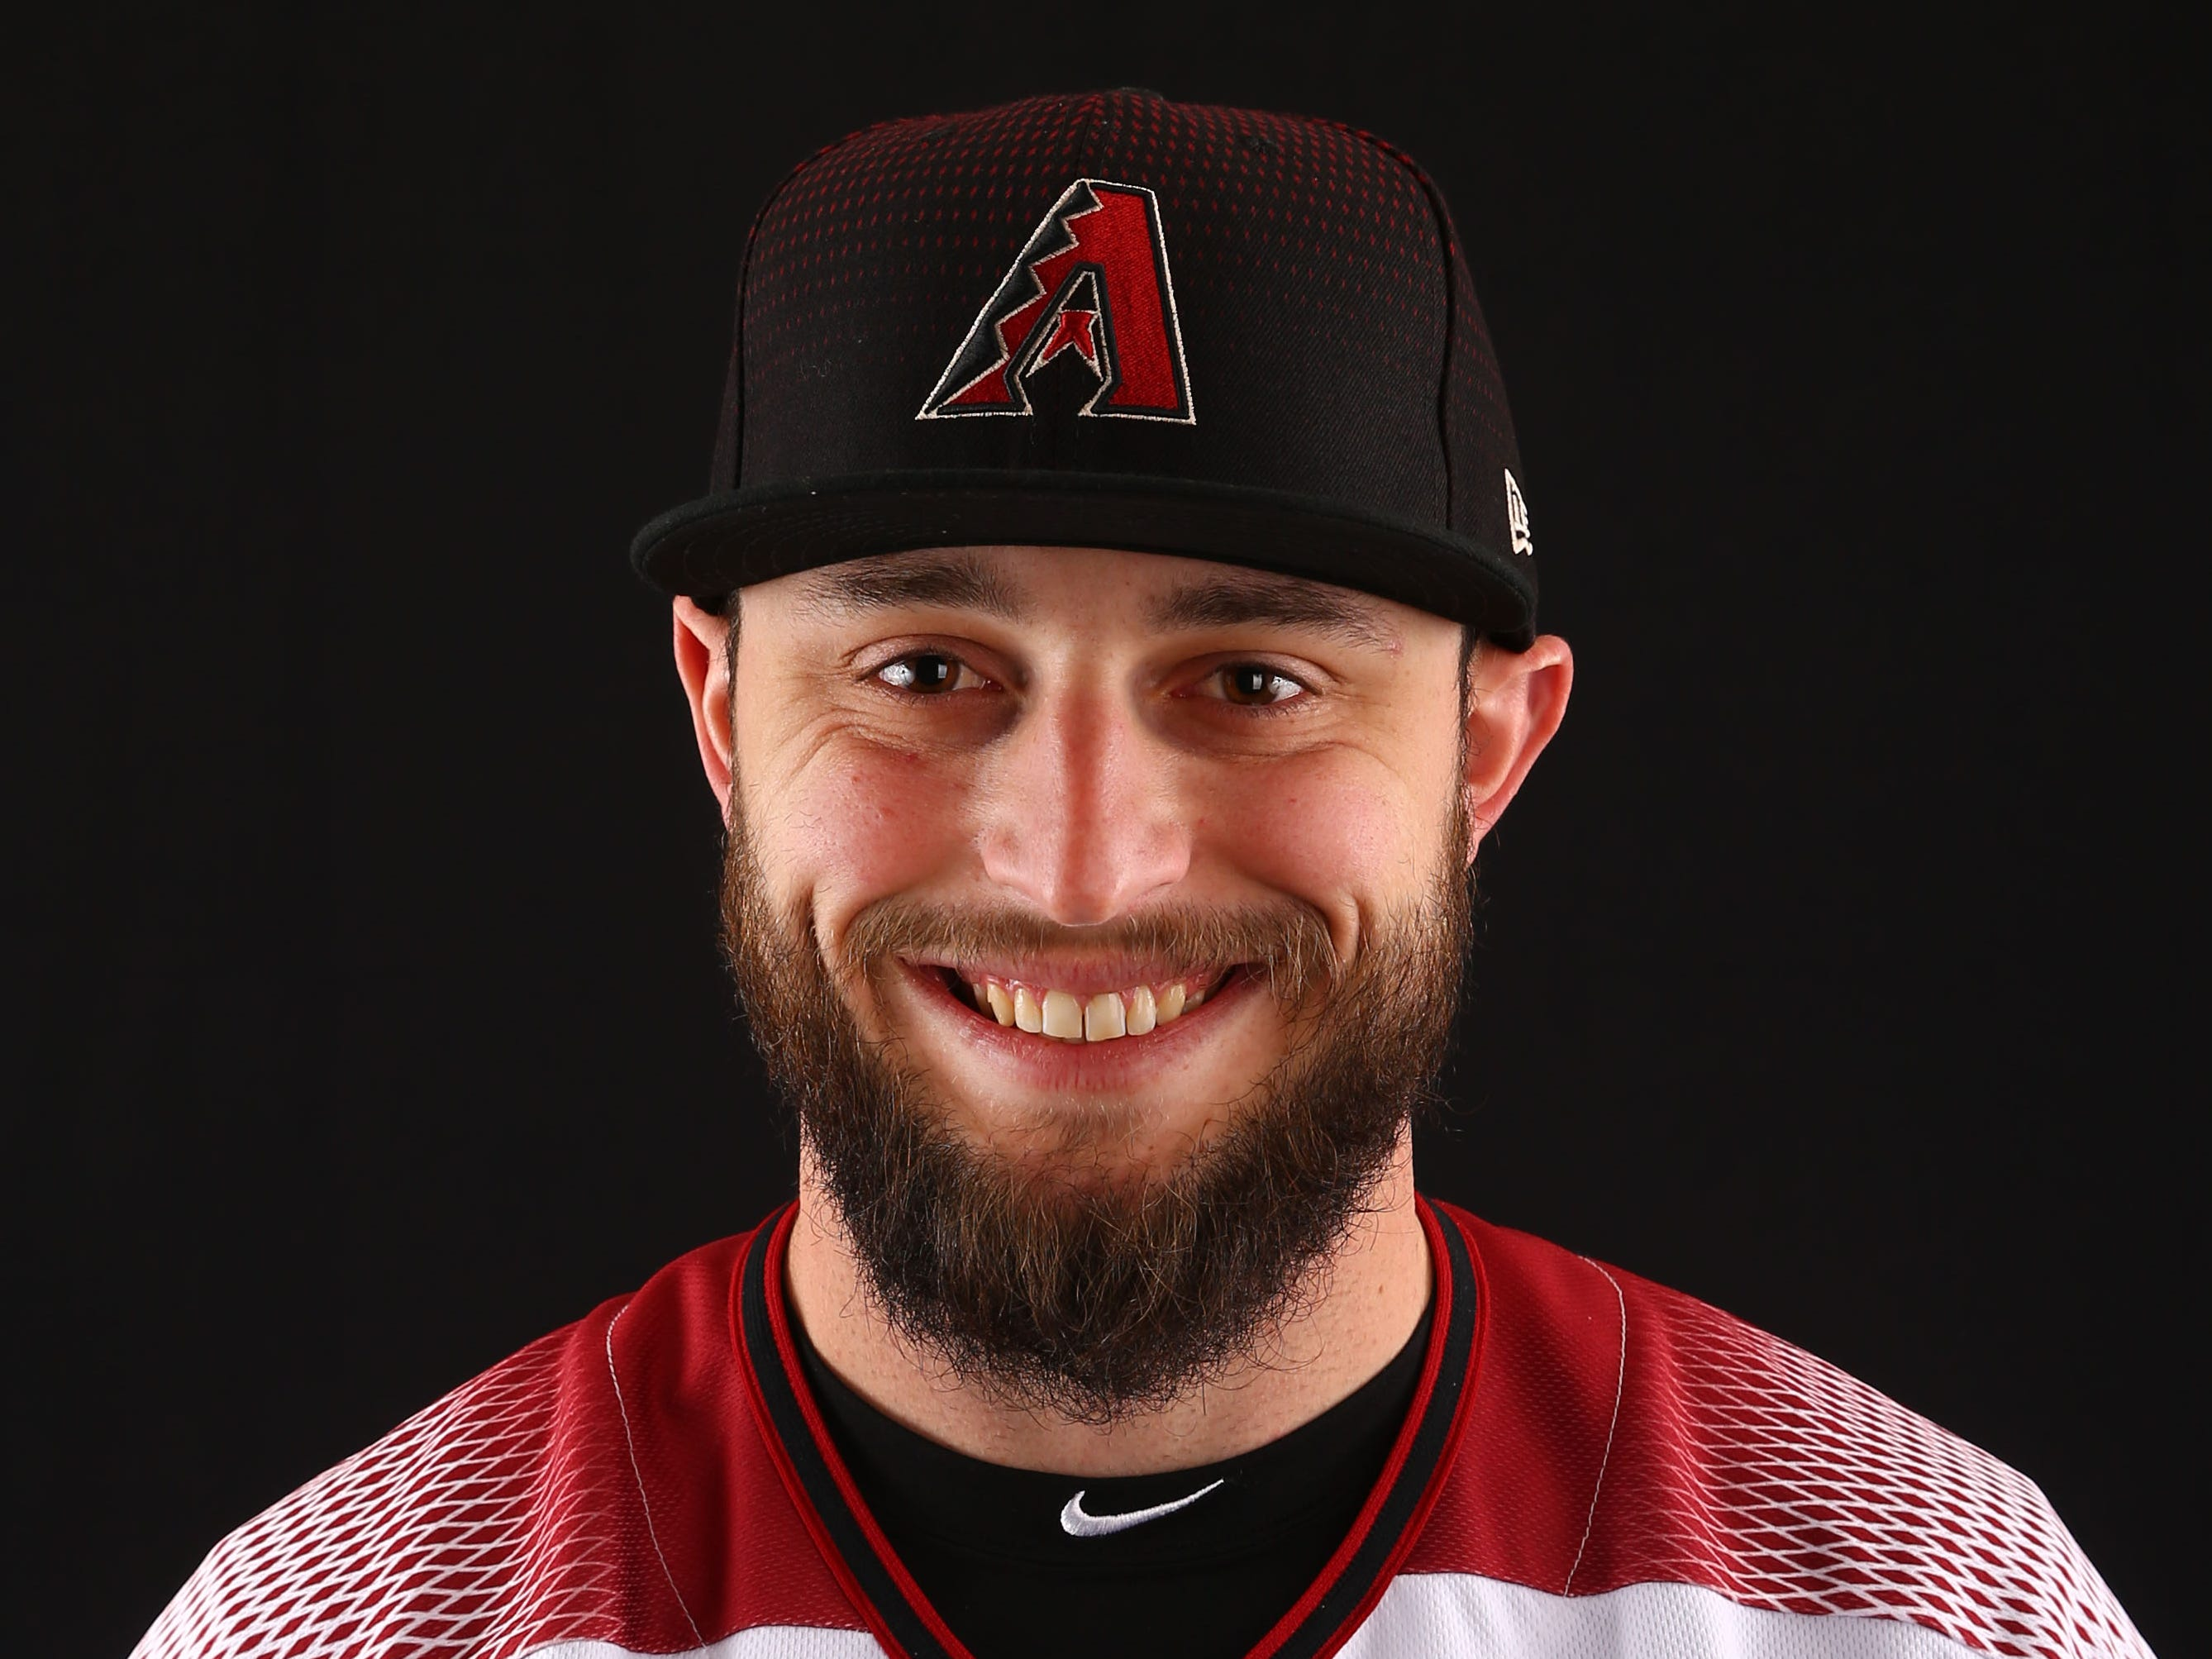 Wyatt Mathisen of the Arizona Diamondbacks poses for a photo during the annual Spring Training Photo Day on Feb. 20 at Salt River Fields in Scottsdale, Ariz.